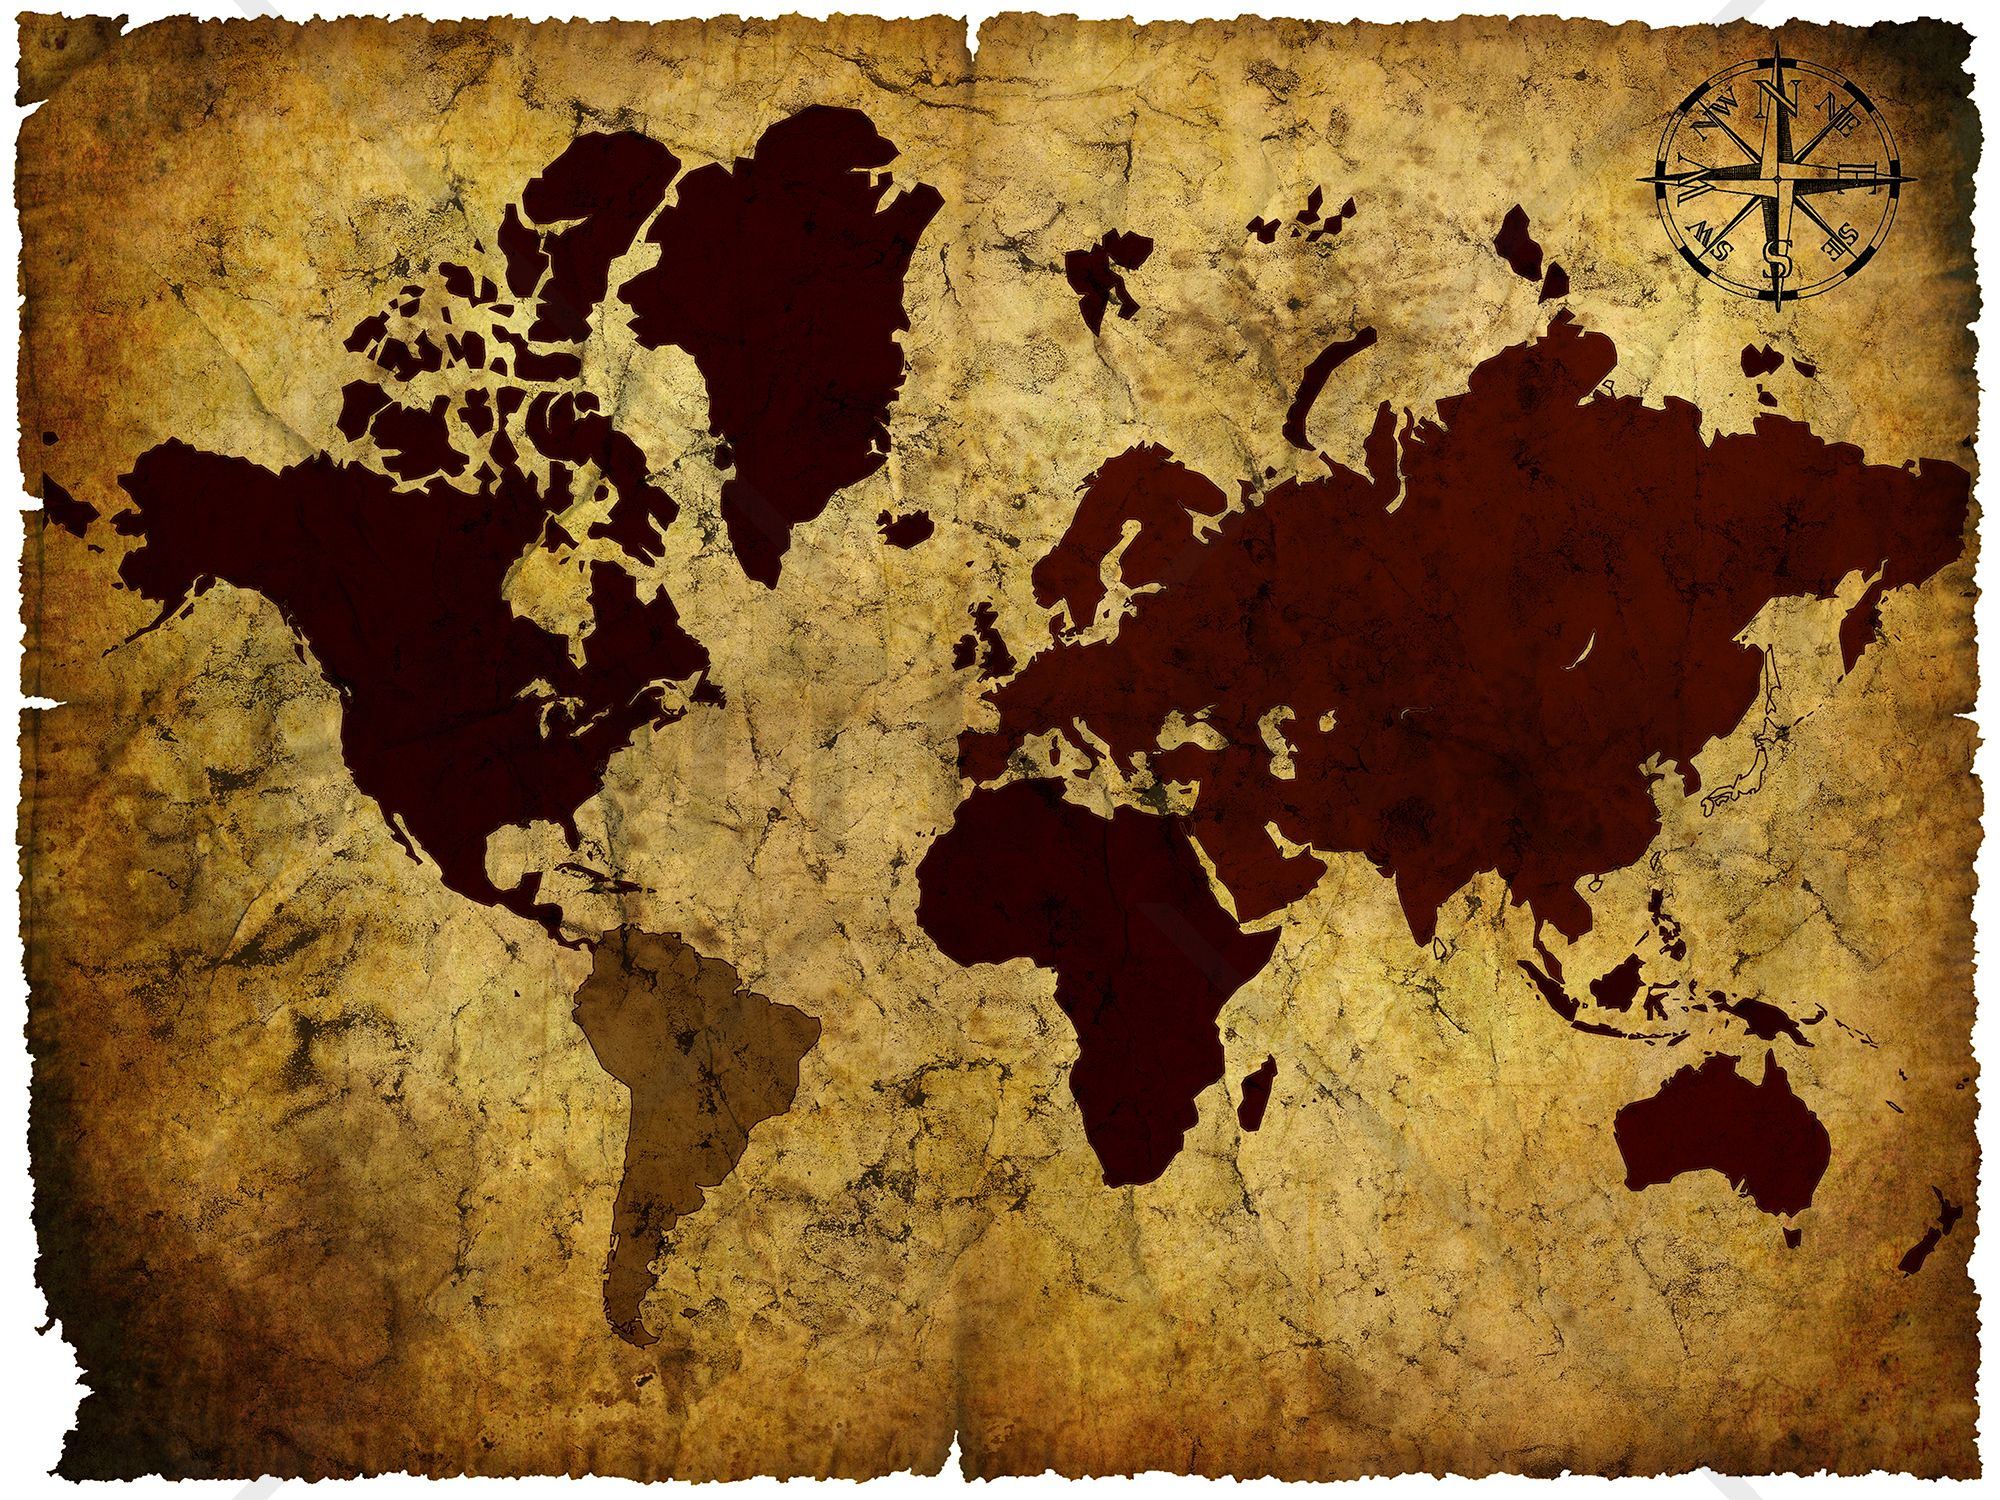 Old Manuscript of World Map - Tapetit / tapetti - Photowall